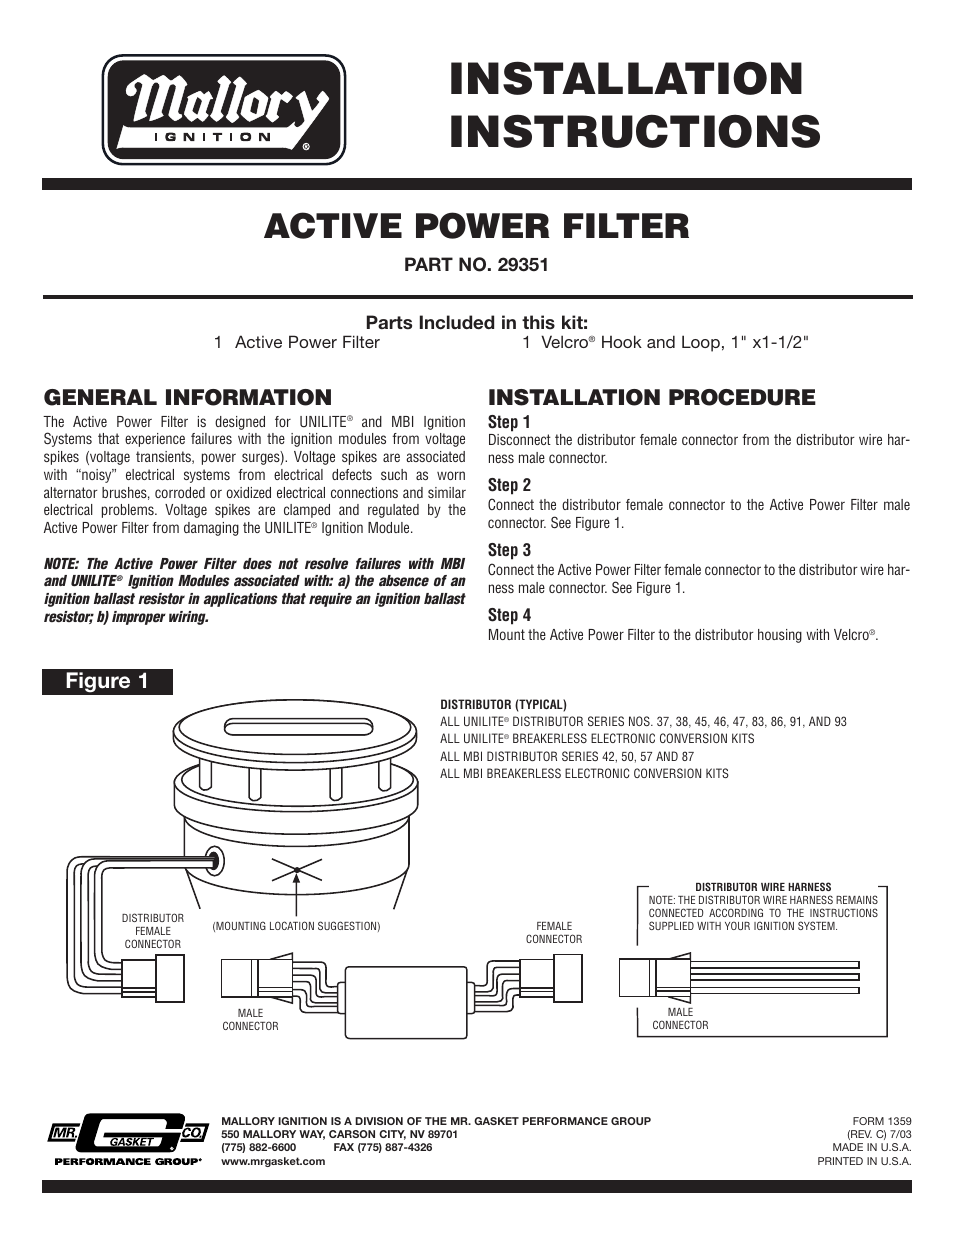 Mallory Ignition Mallory Active Power Filter 29351 User